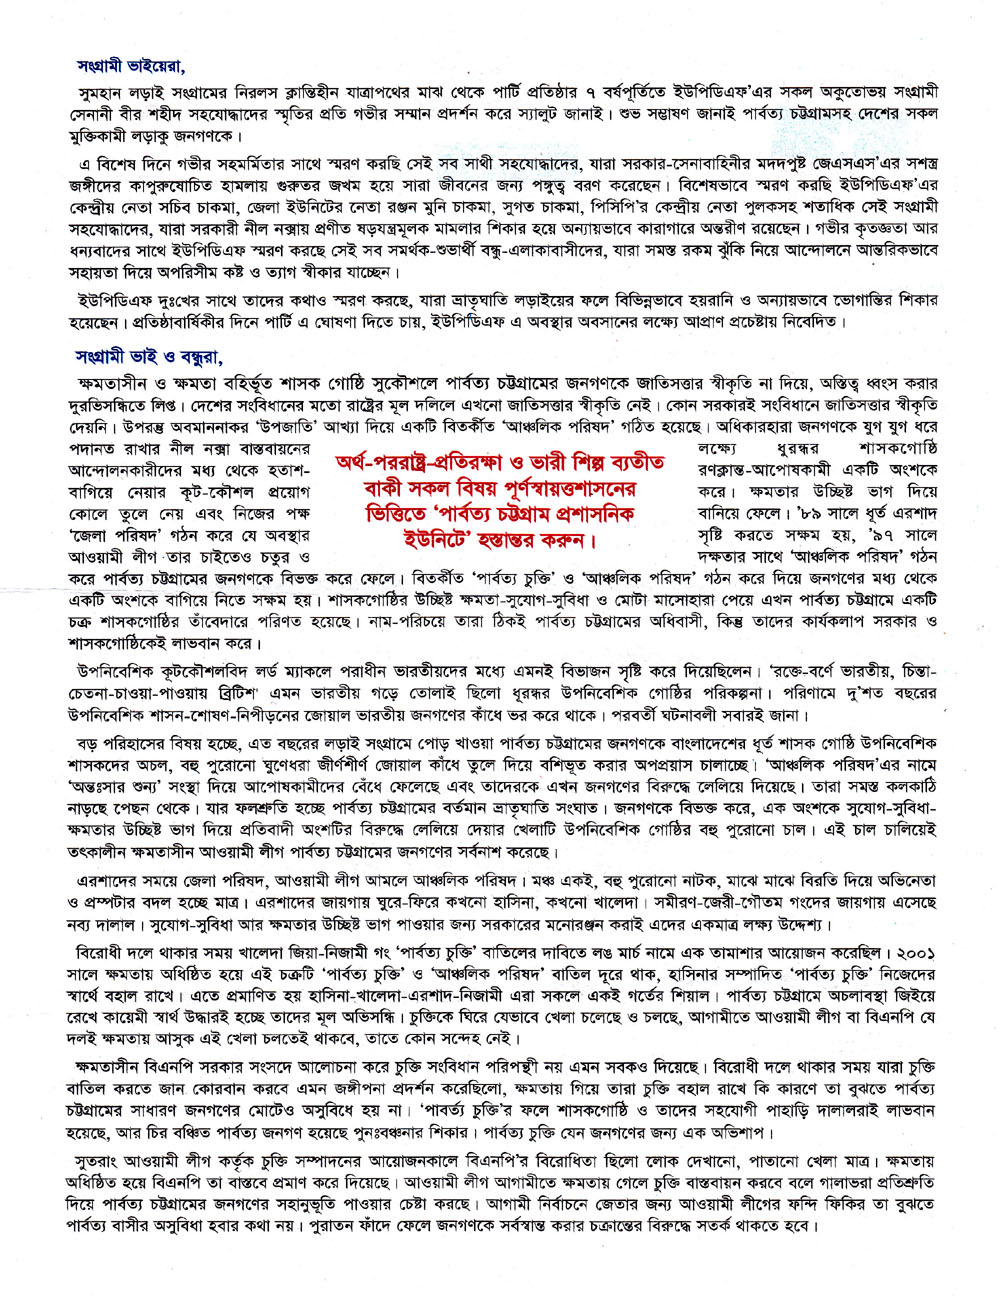 8- Leaflet on 7  founding anniversary, page-2